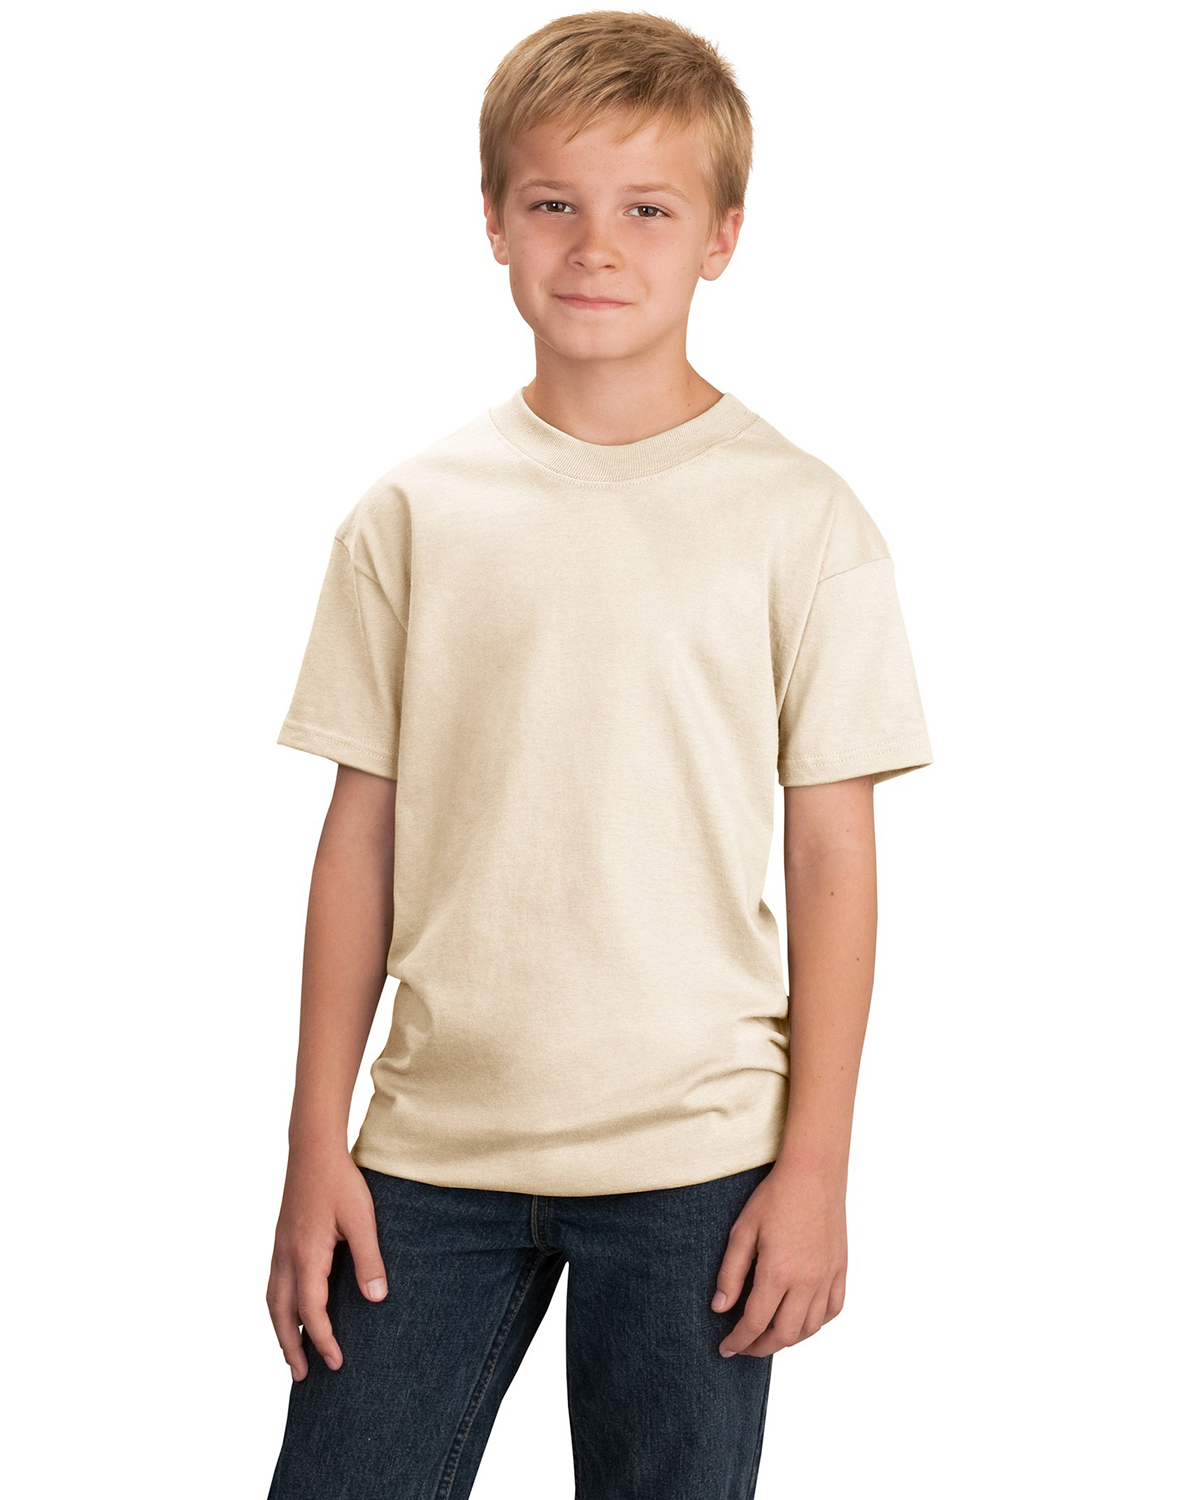 Youth Cotton T Shirt Buy Discount Youth 100 Cotton T Shirt